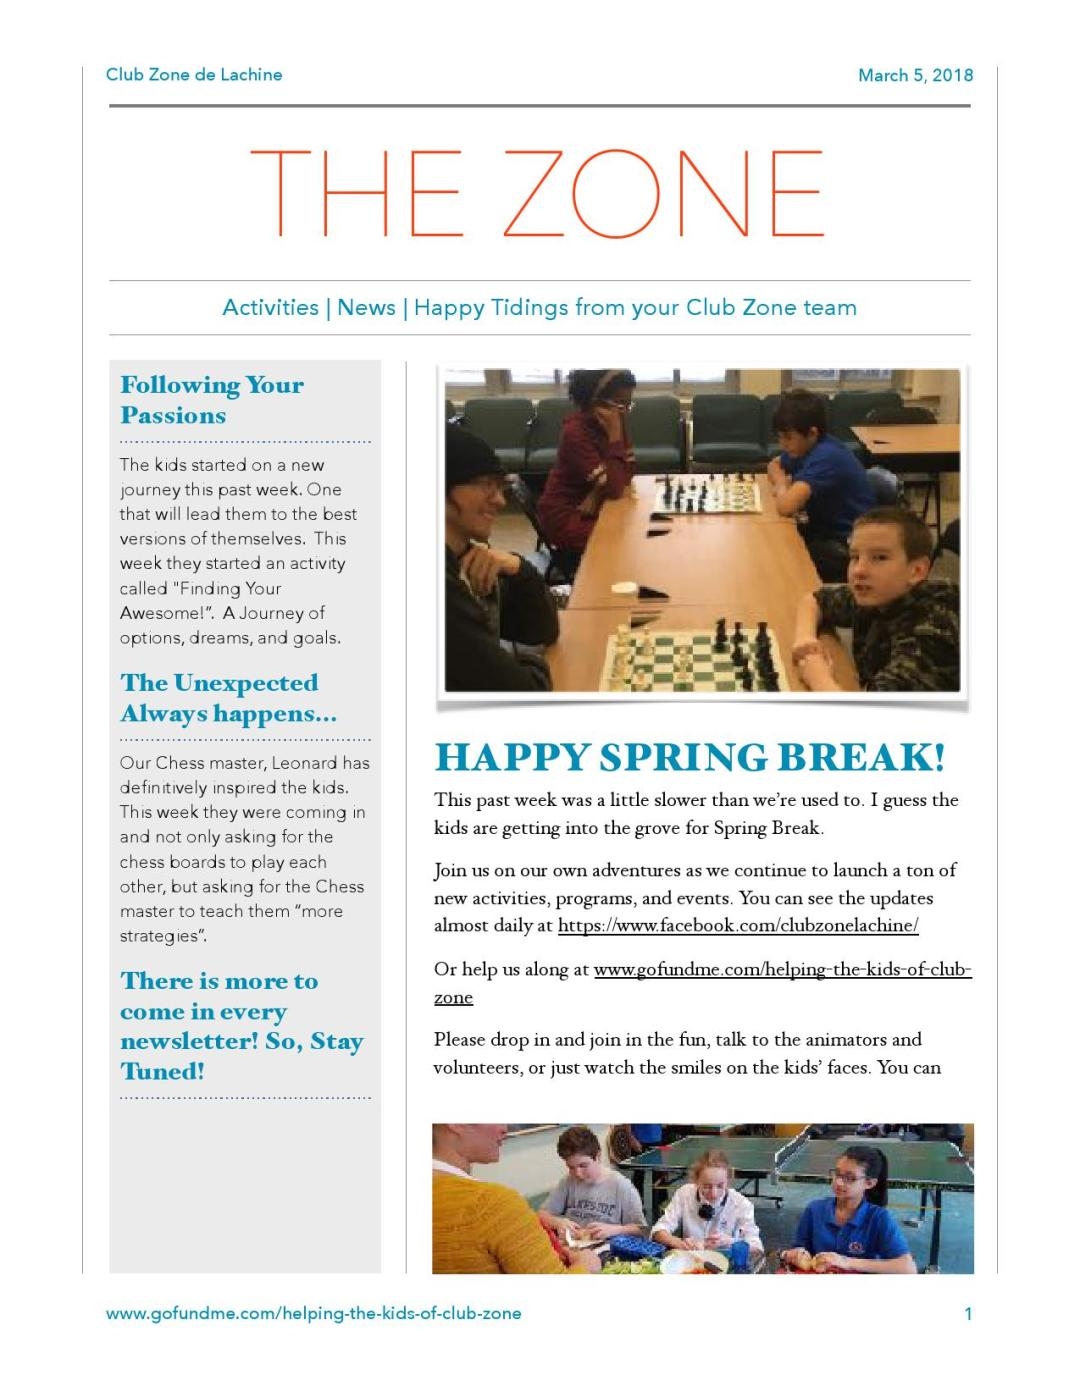 Club Zone Newsletter 2018-03-05_1